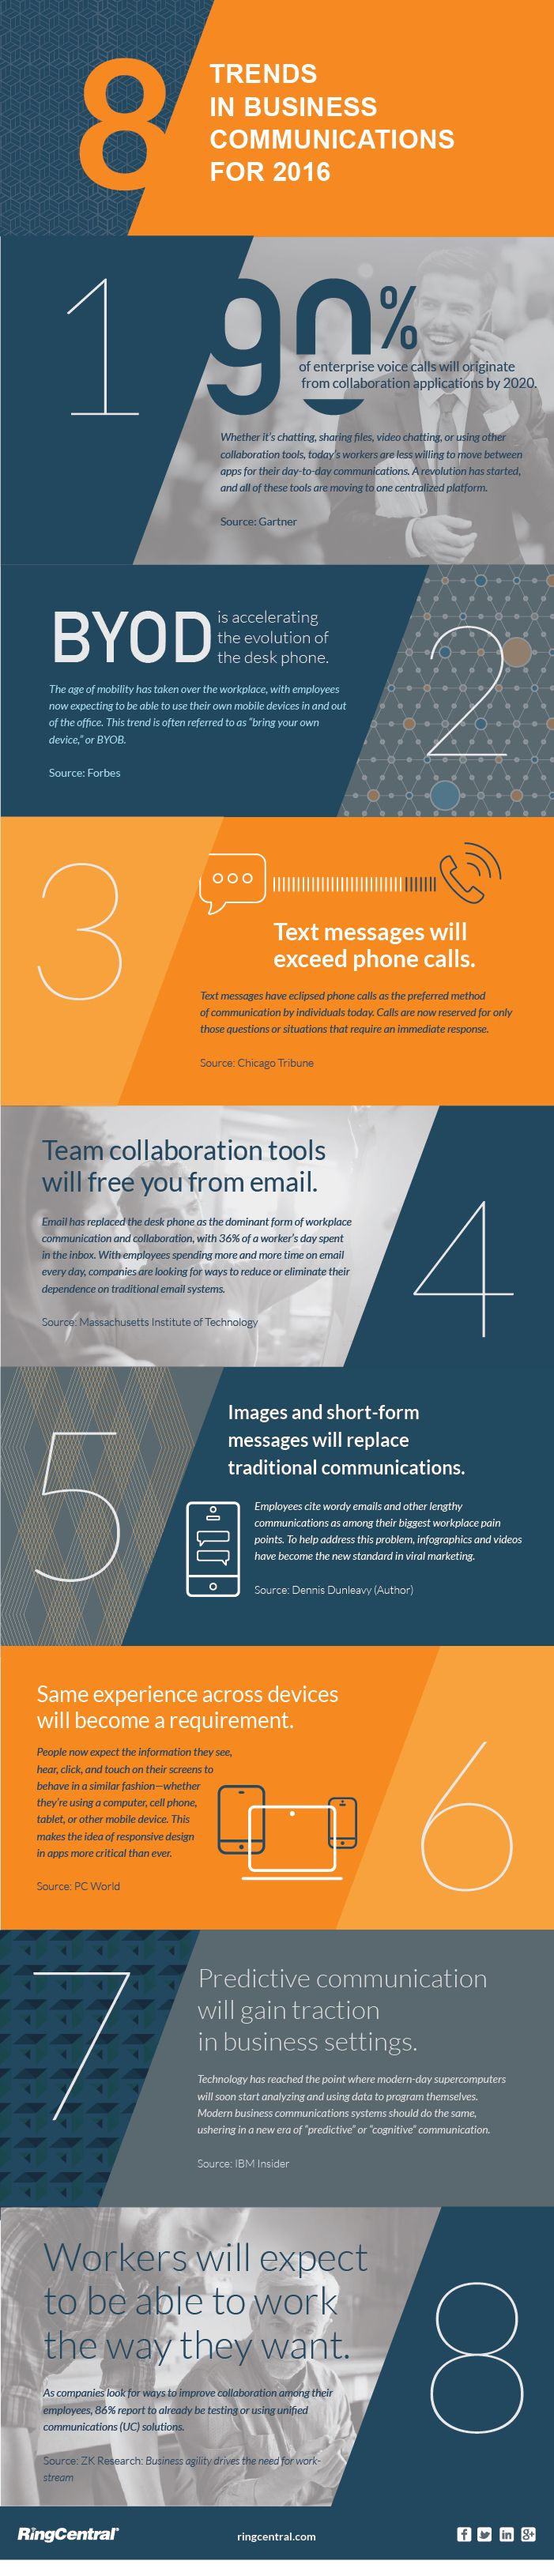 8 Trends in Business Communications and Collaboration